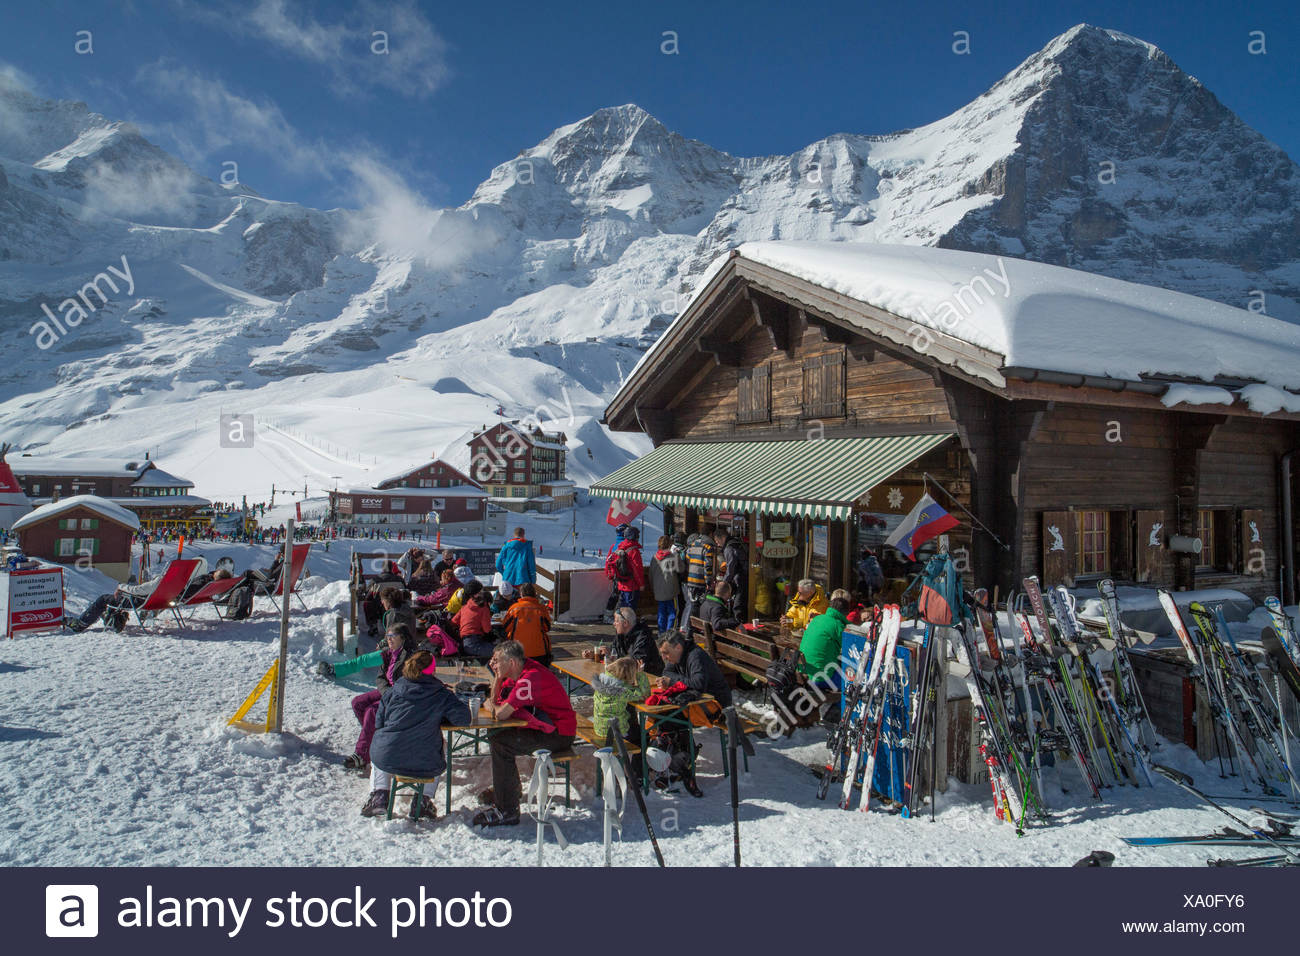 Ski, ski tourist, Kleine Scheidegg, Eiger, monk, Mönch, Jungfrau, mountain, mountains, ski, skiing, Carving, winter, winter spor - Stock Image